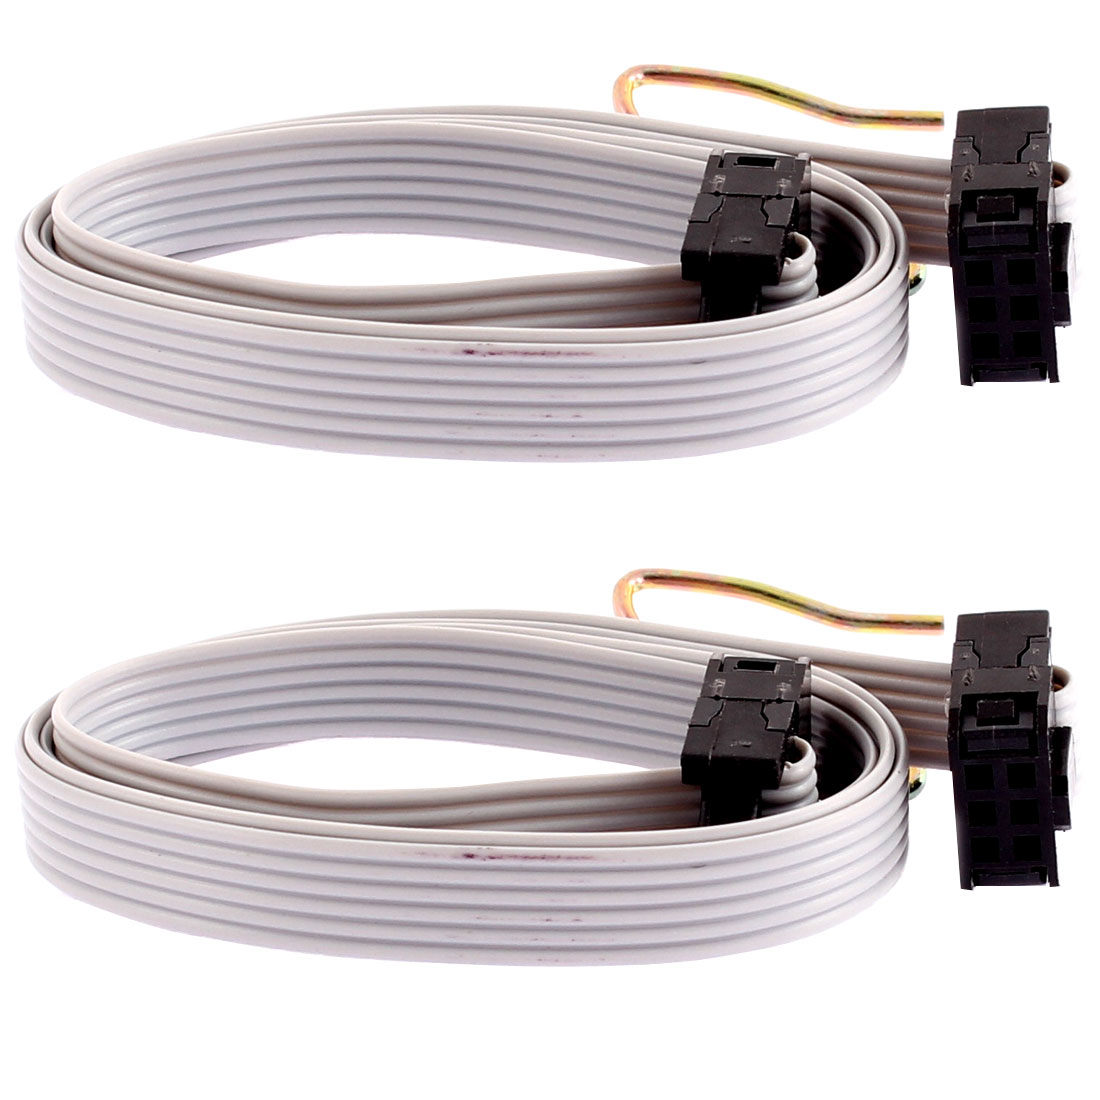 2.54mm Pitch 6 Pins 6 Wires F/F IDC Connector Flat Ribbon Cable 20 Inch 2 Pcs